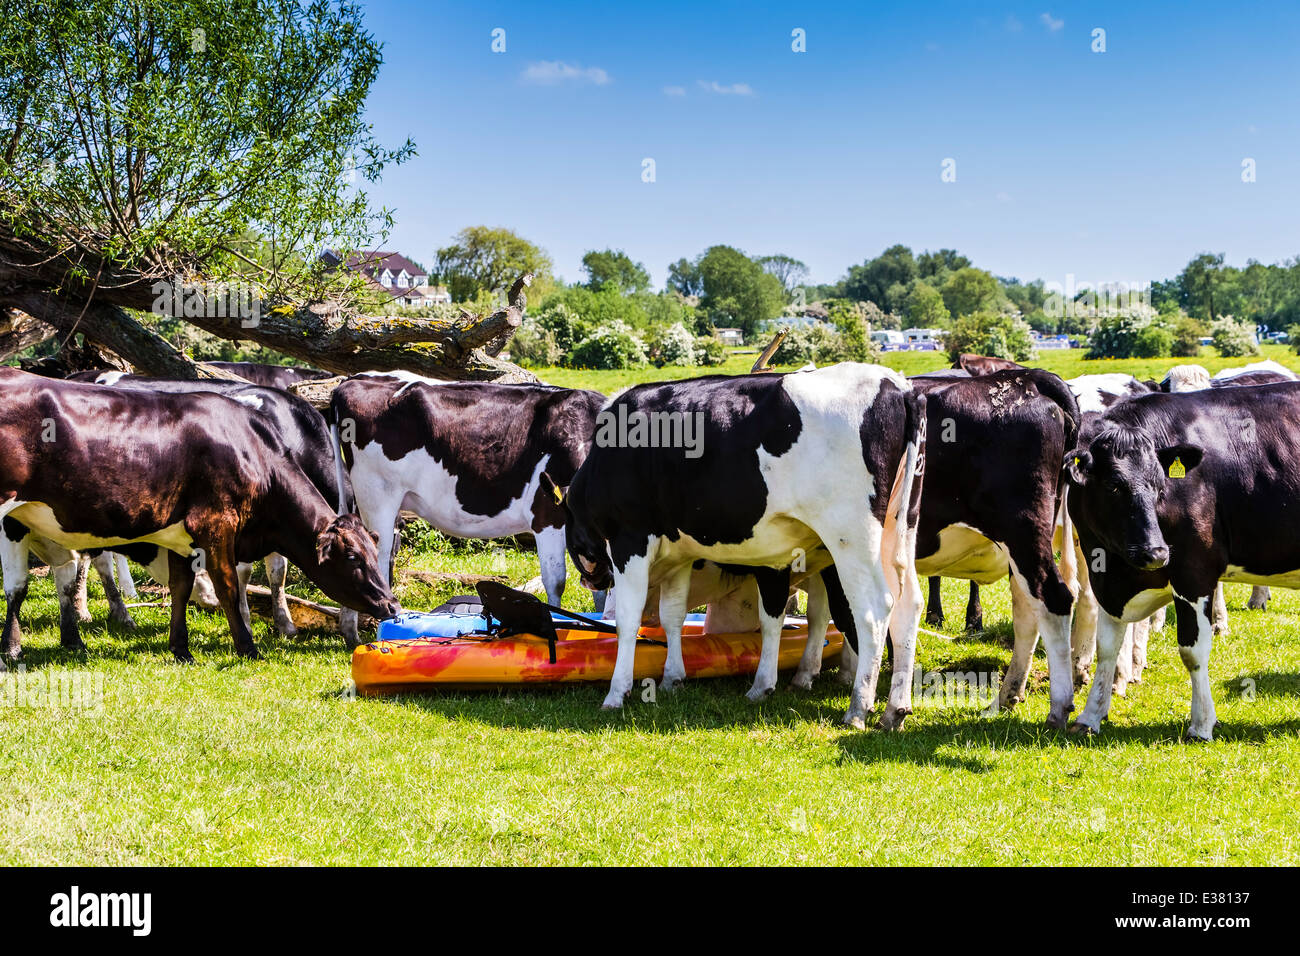 A herd of cows finding two Kayaks very interesting - Stock Image